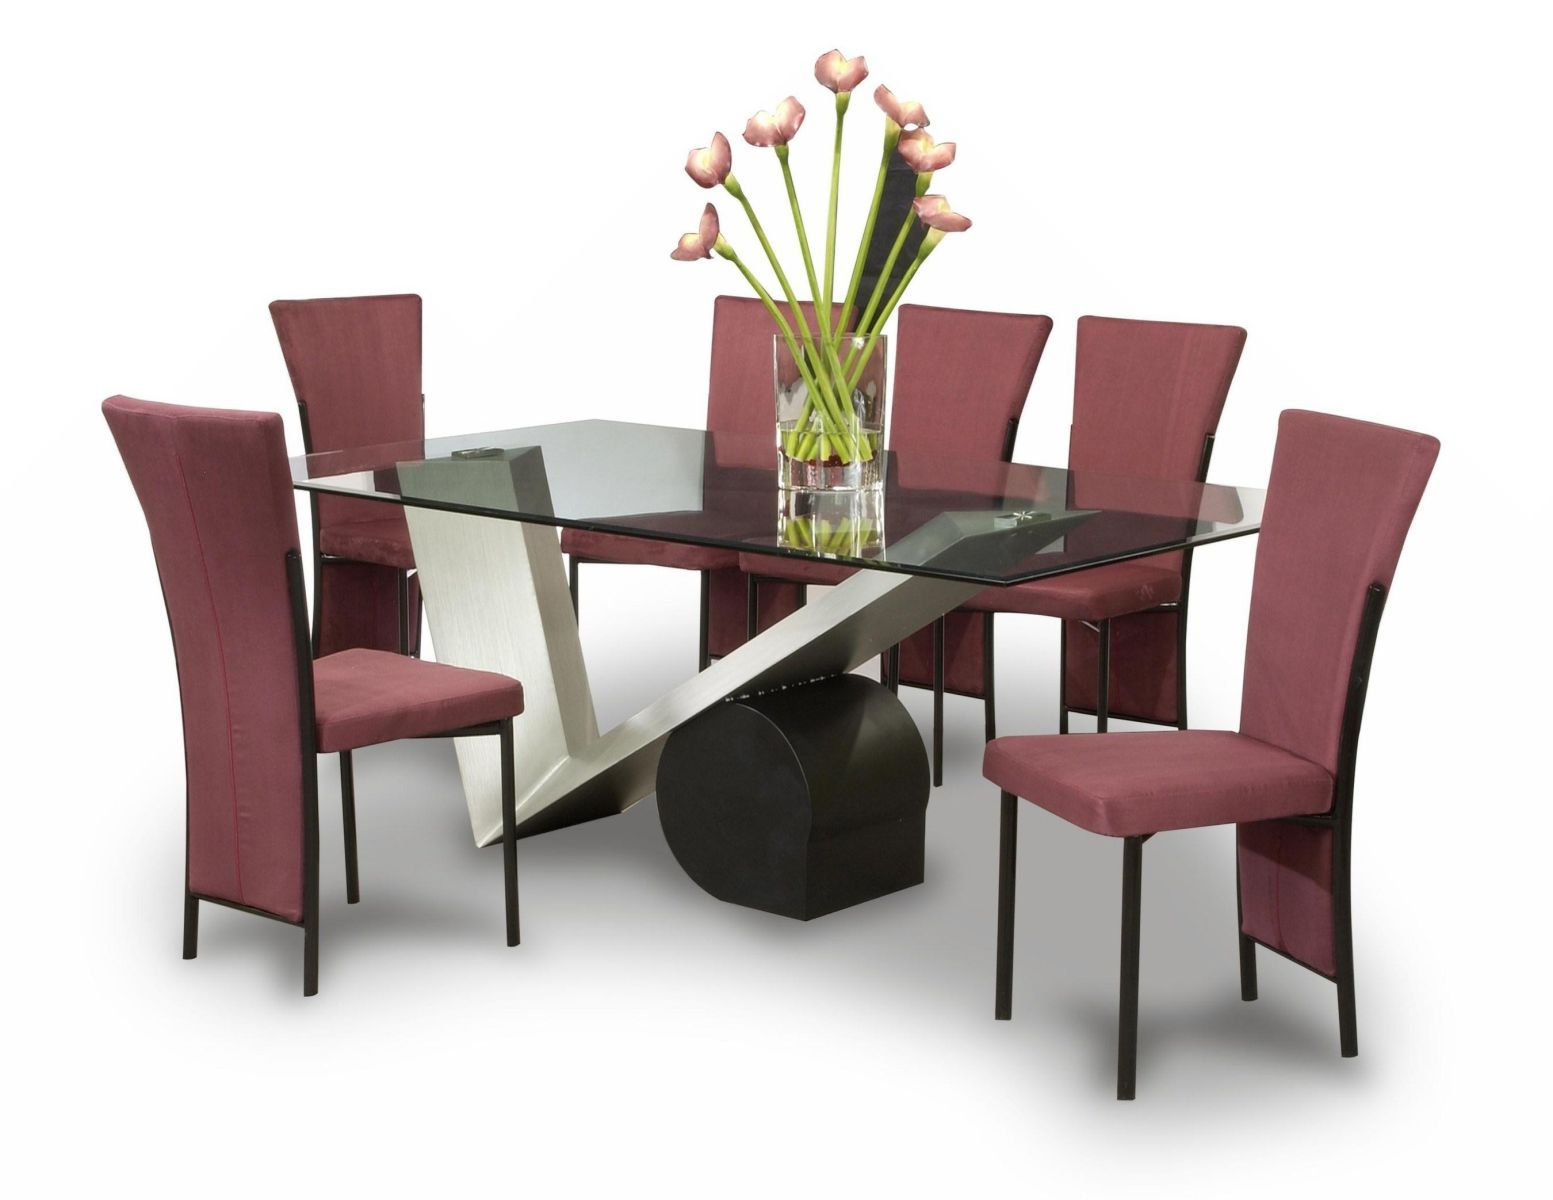 Chintaly Dinette Set  Price Upon RequestCall (631) 742-1351 for Best Price Guarantee